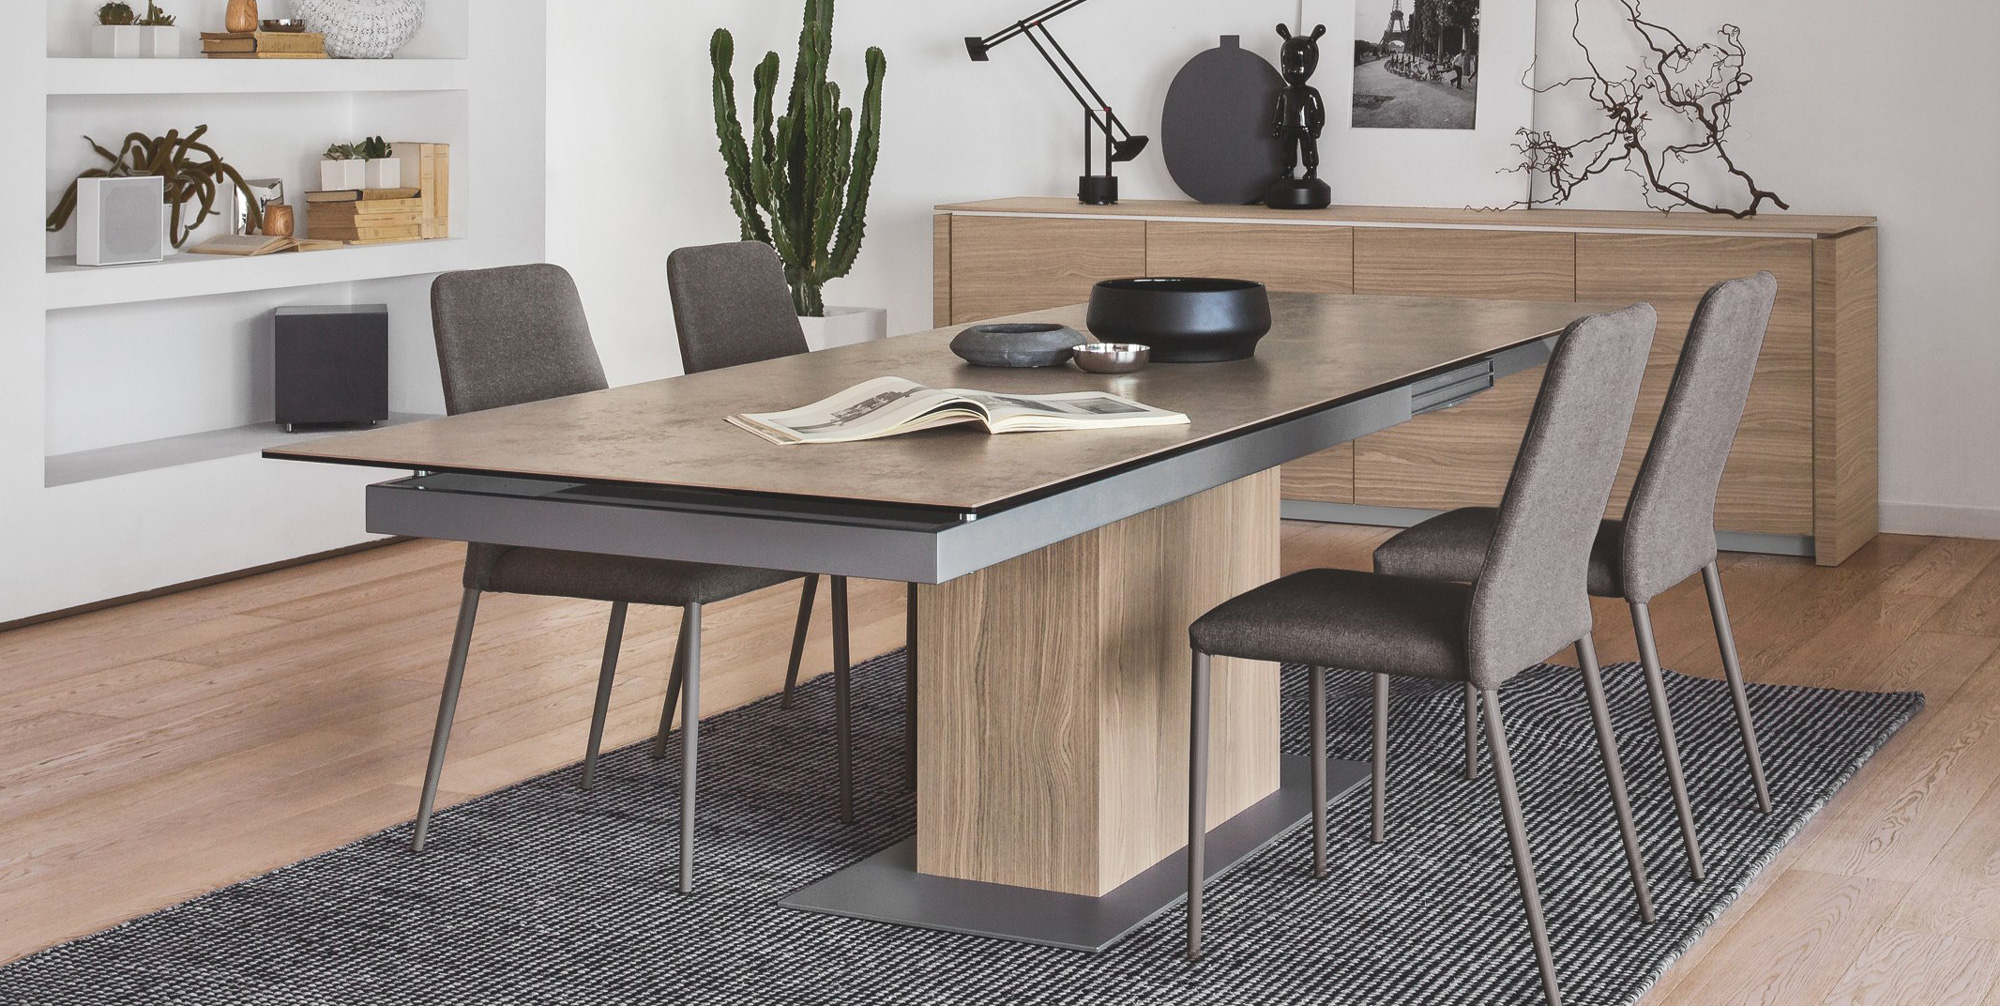 Sincro table hip furniture for Hip furniture